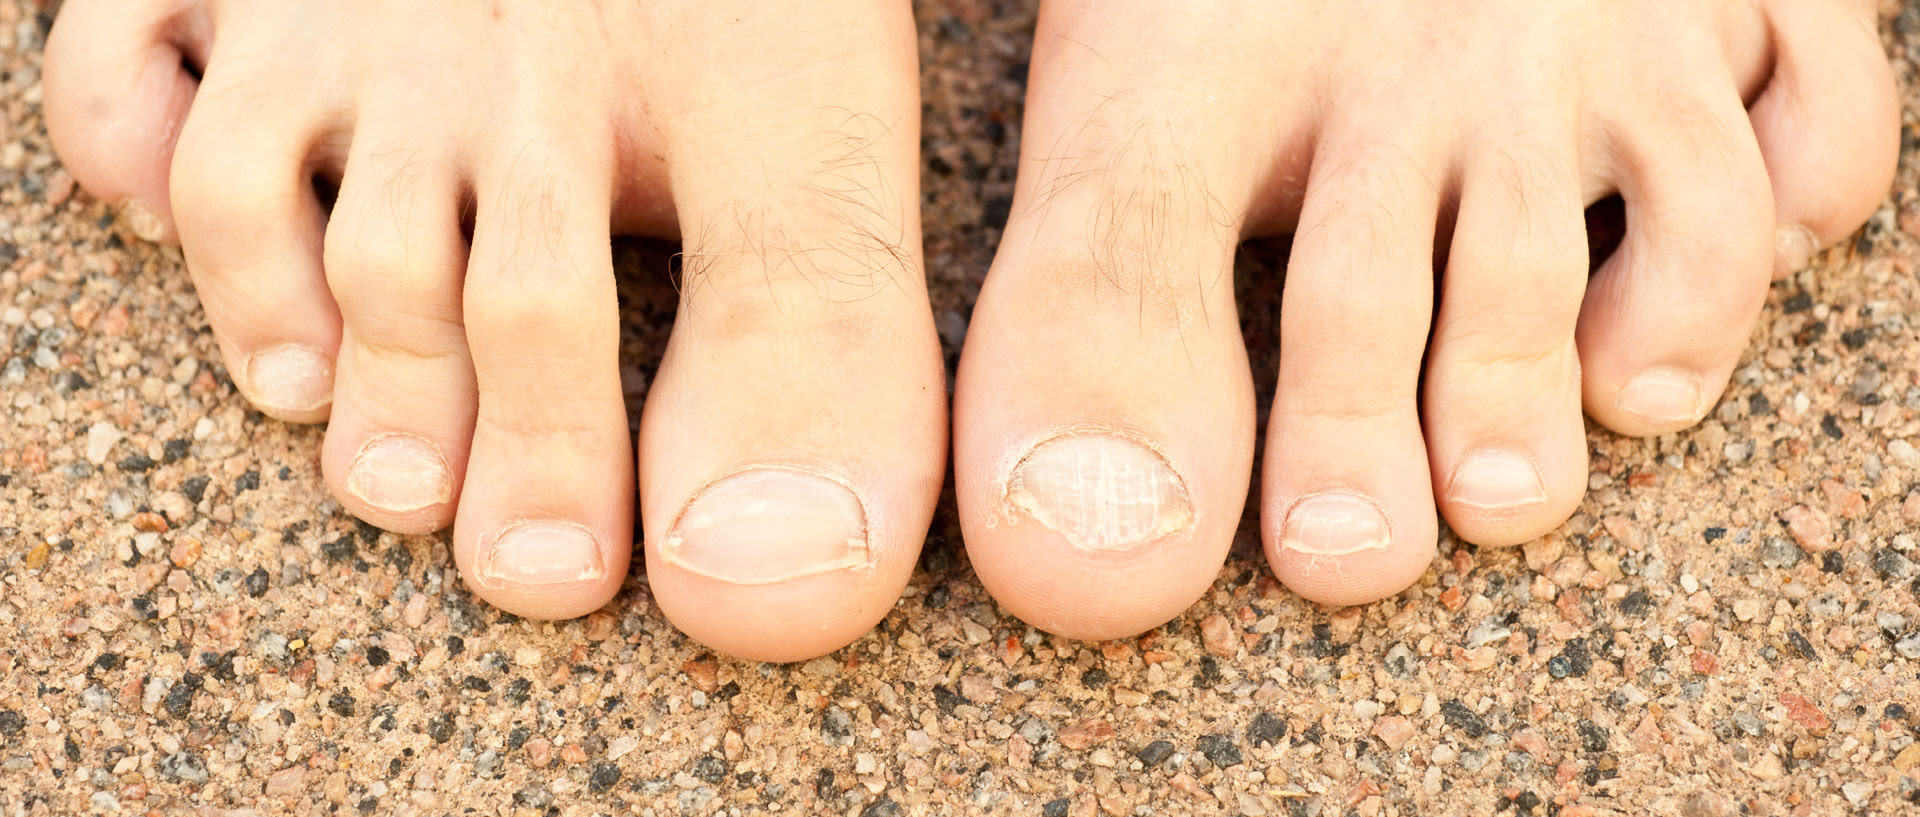 What Can I Do To Relieve Hammertoe Pain Consumer Reports